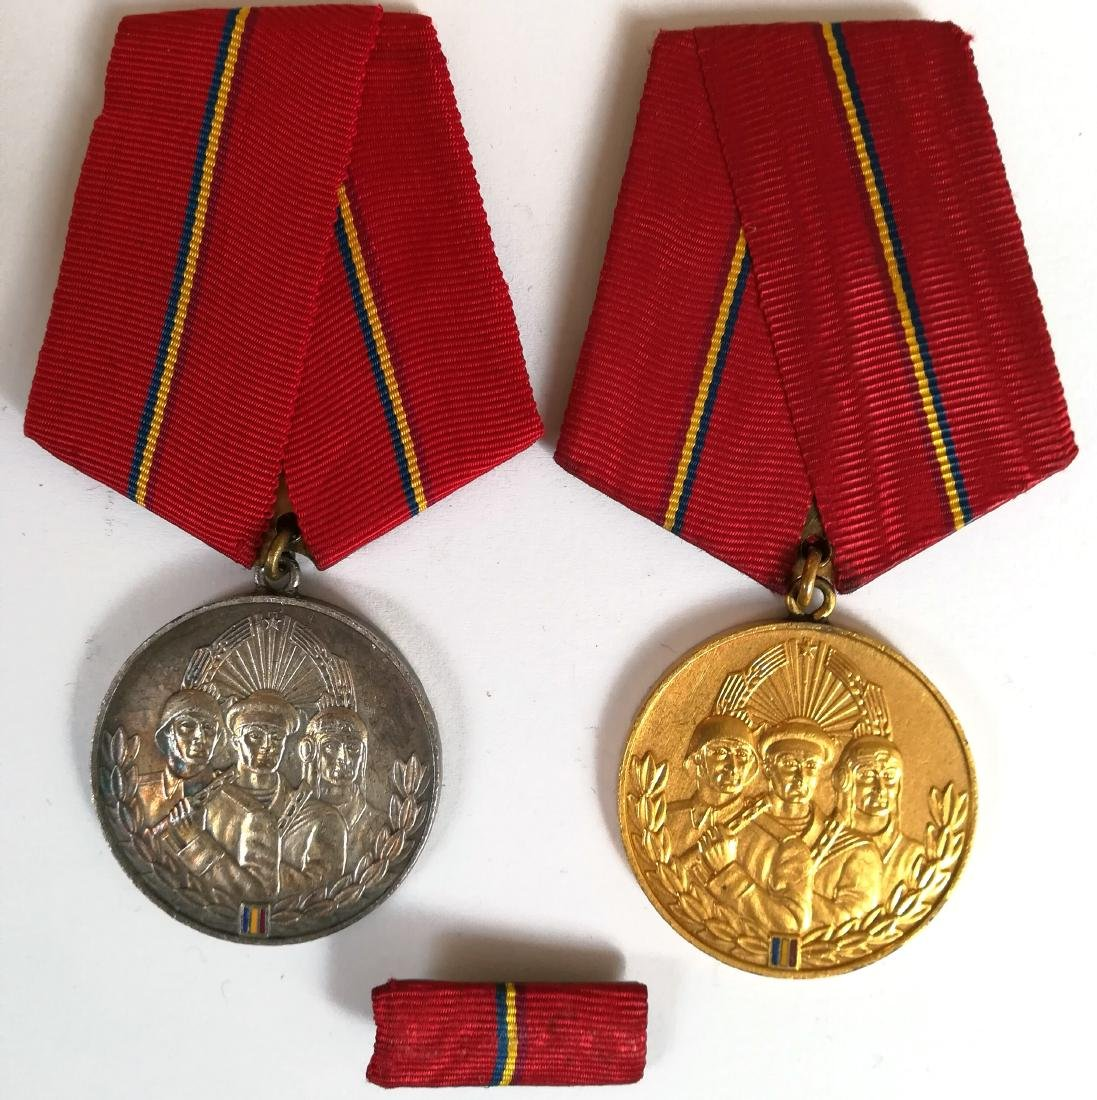 RSR - MEDAL FOR SOLDIER`S VIRTUE, instituted in 1959